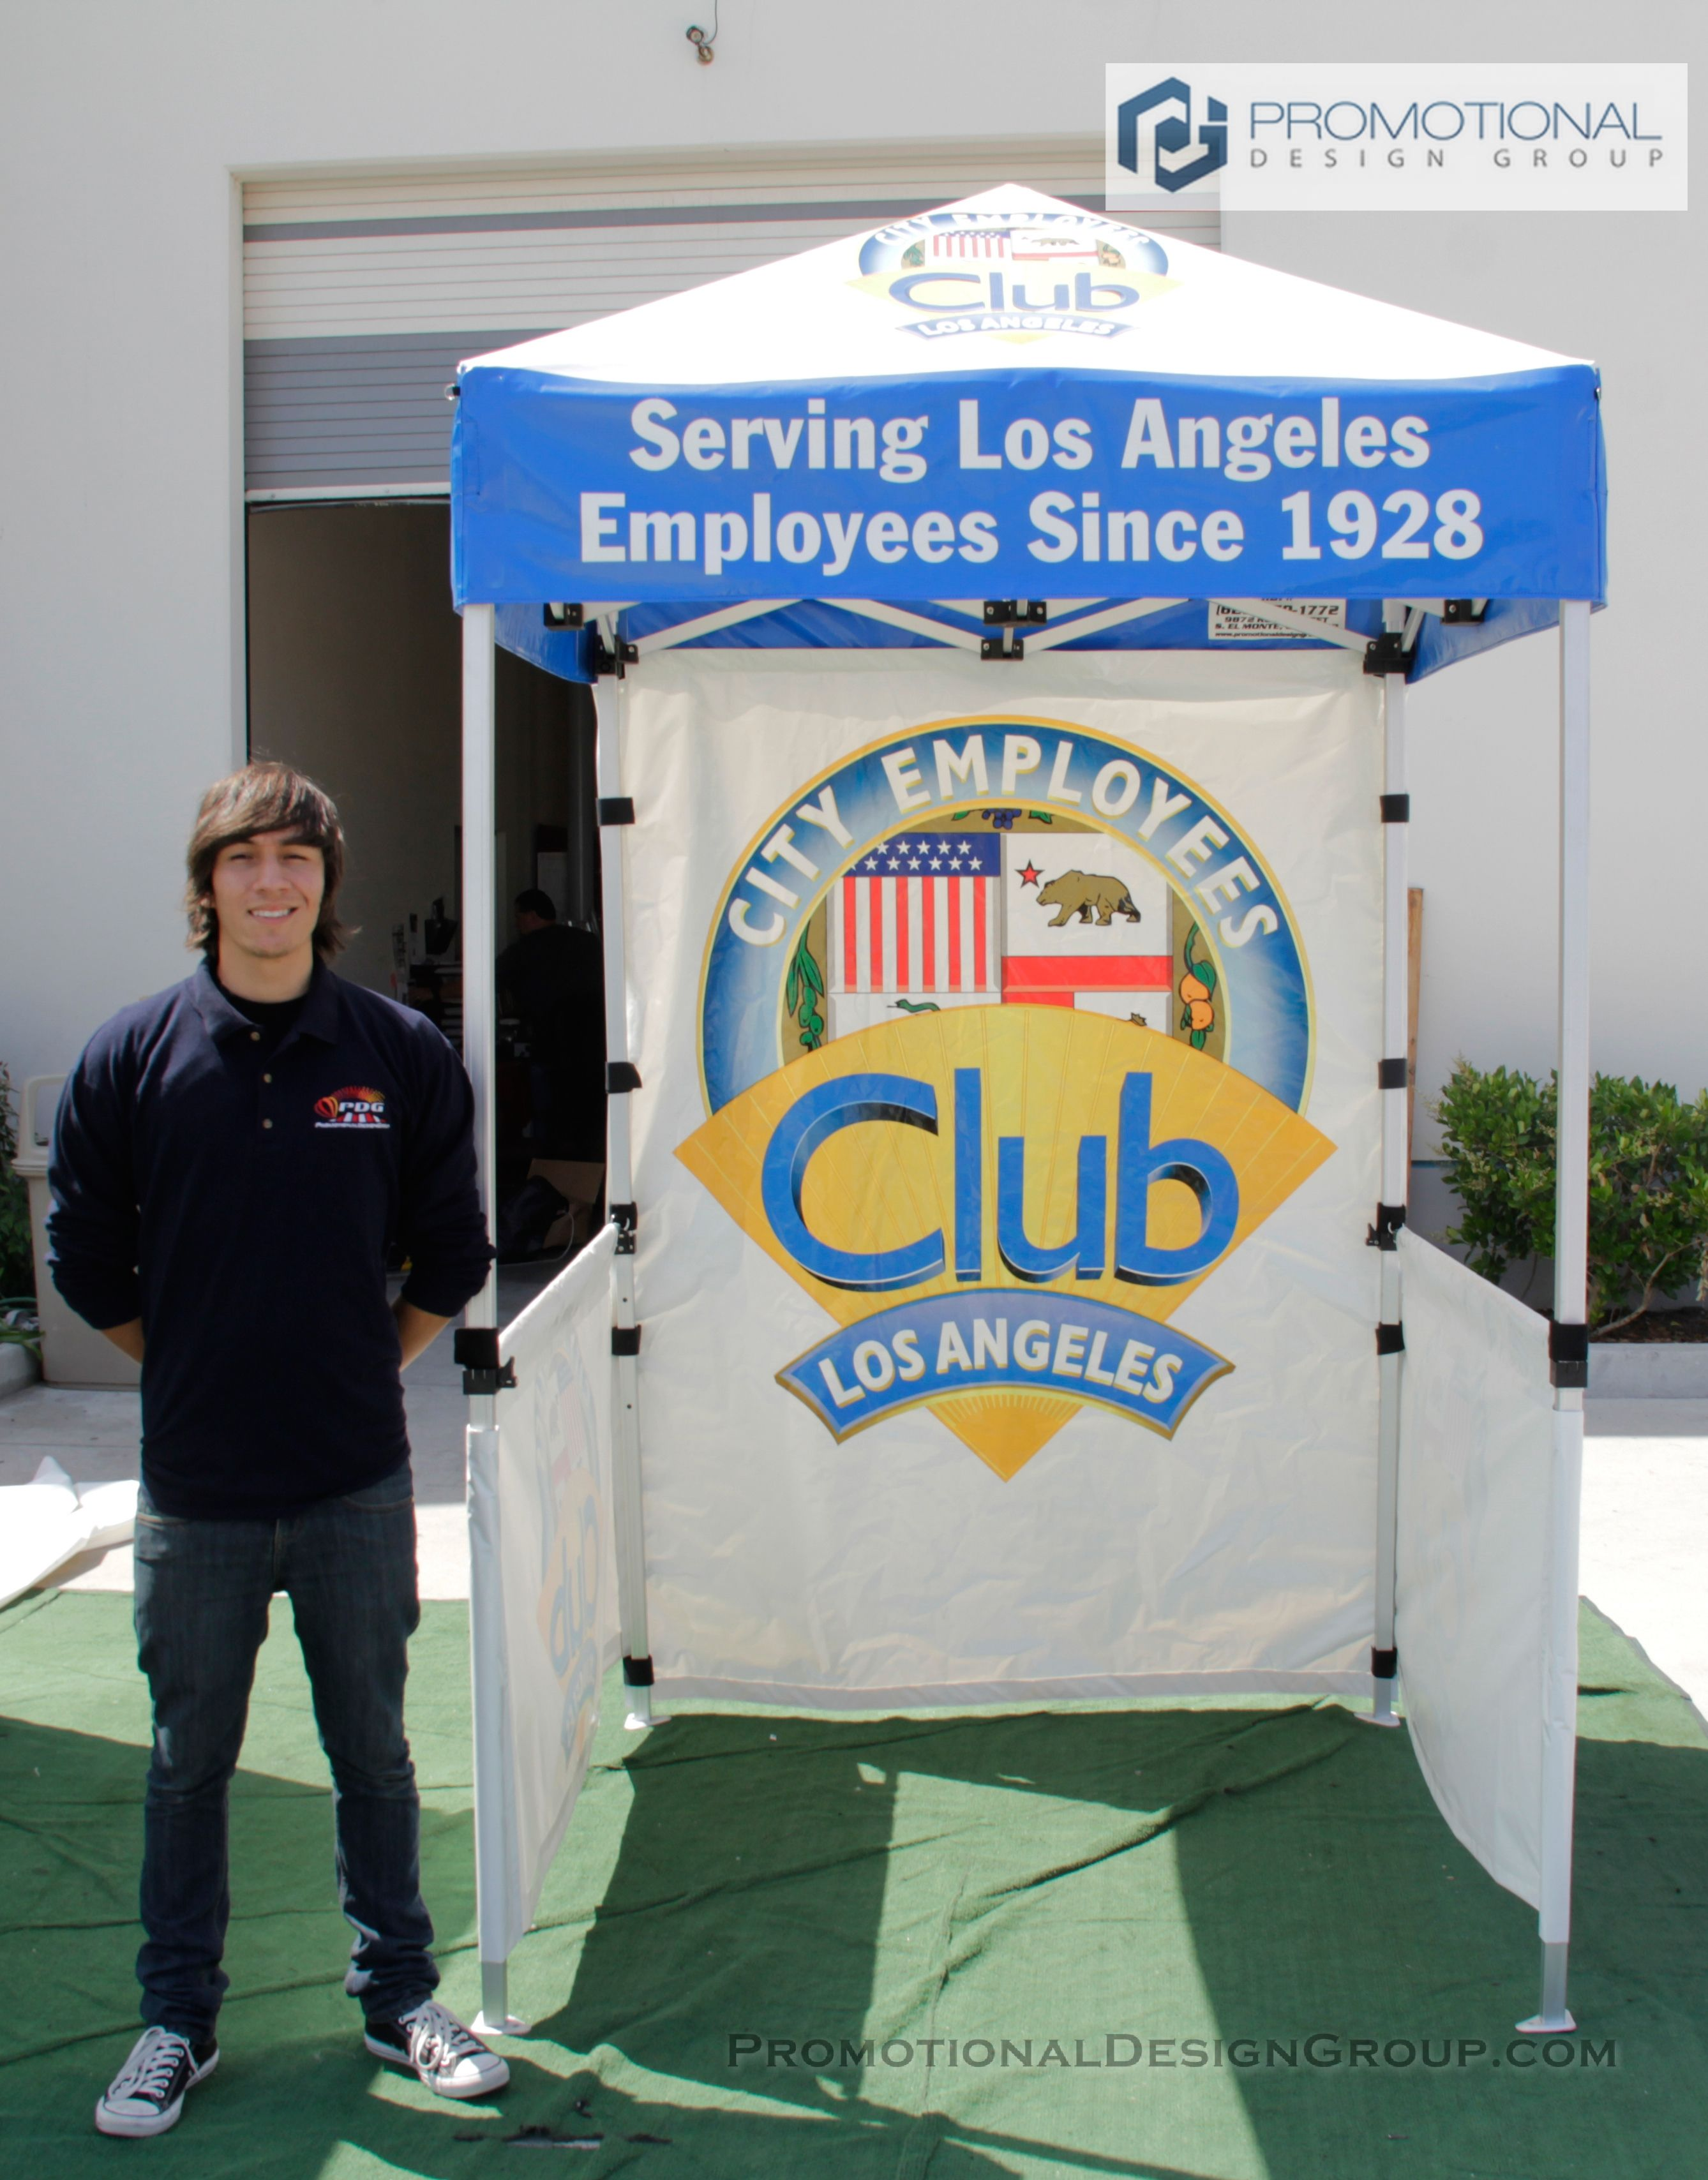 5' x 5' Pop Up Tent for City Employees Club